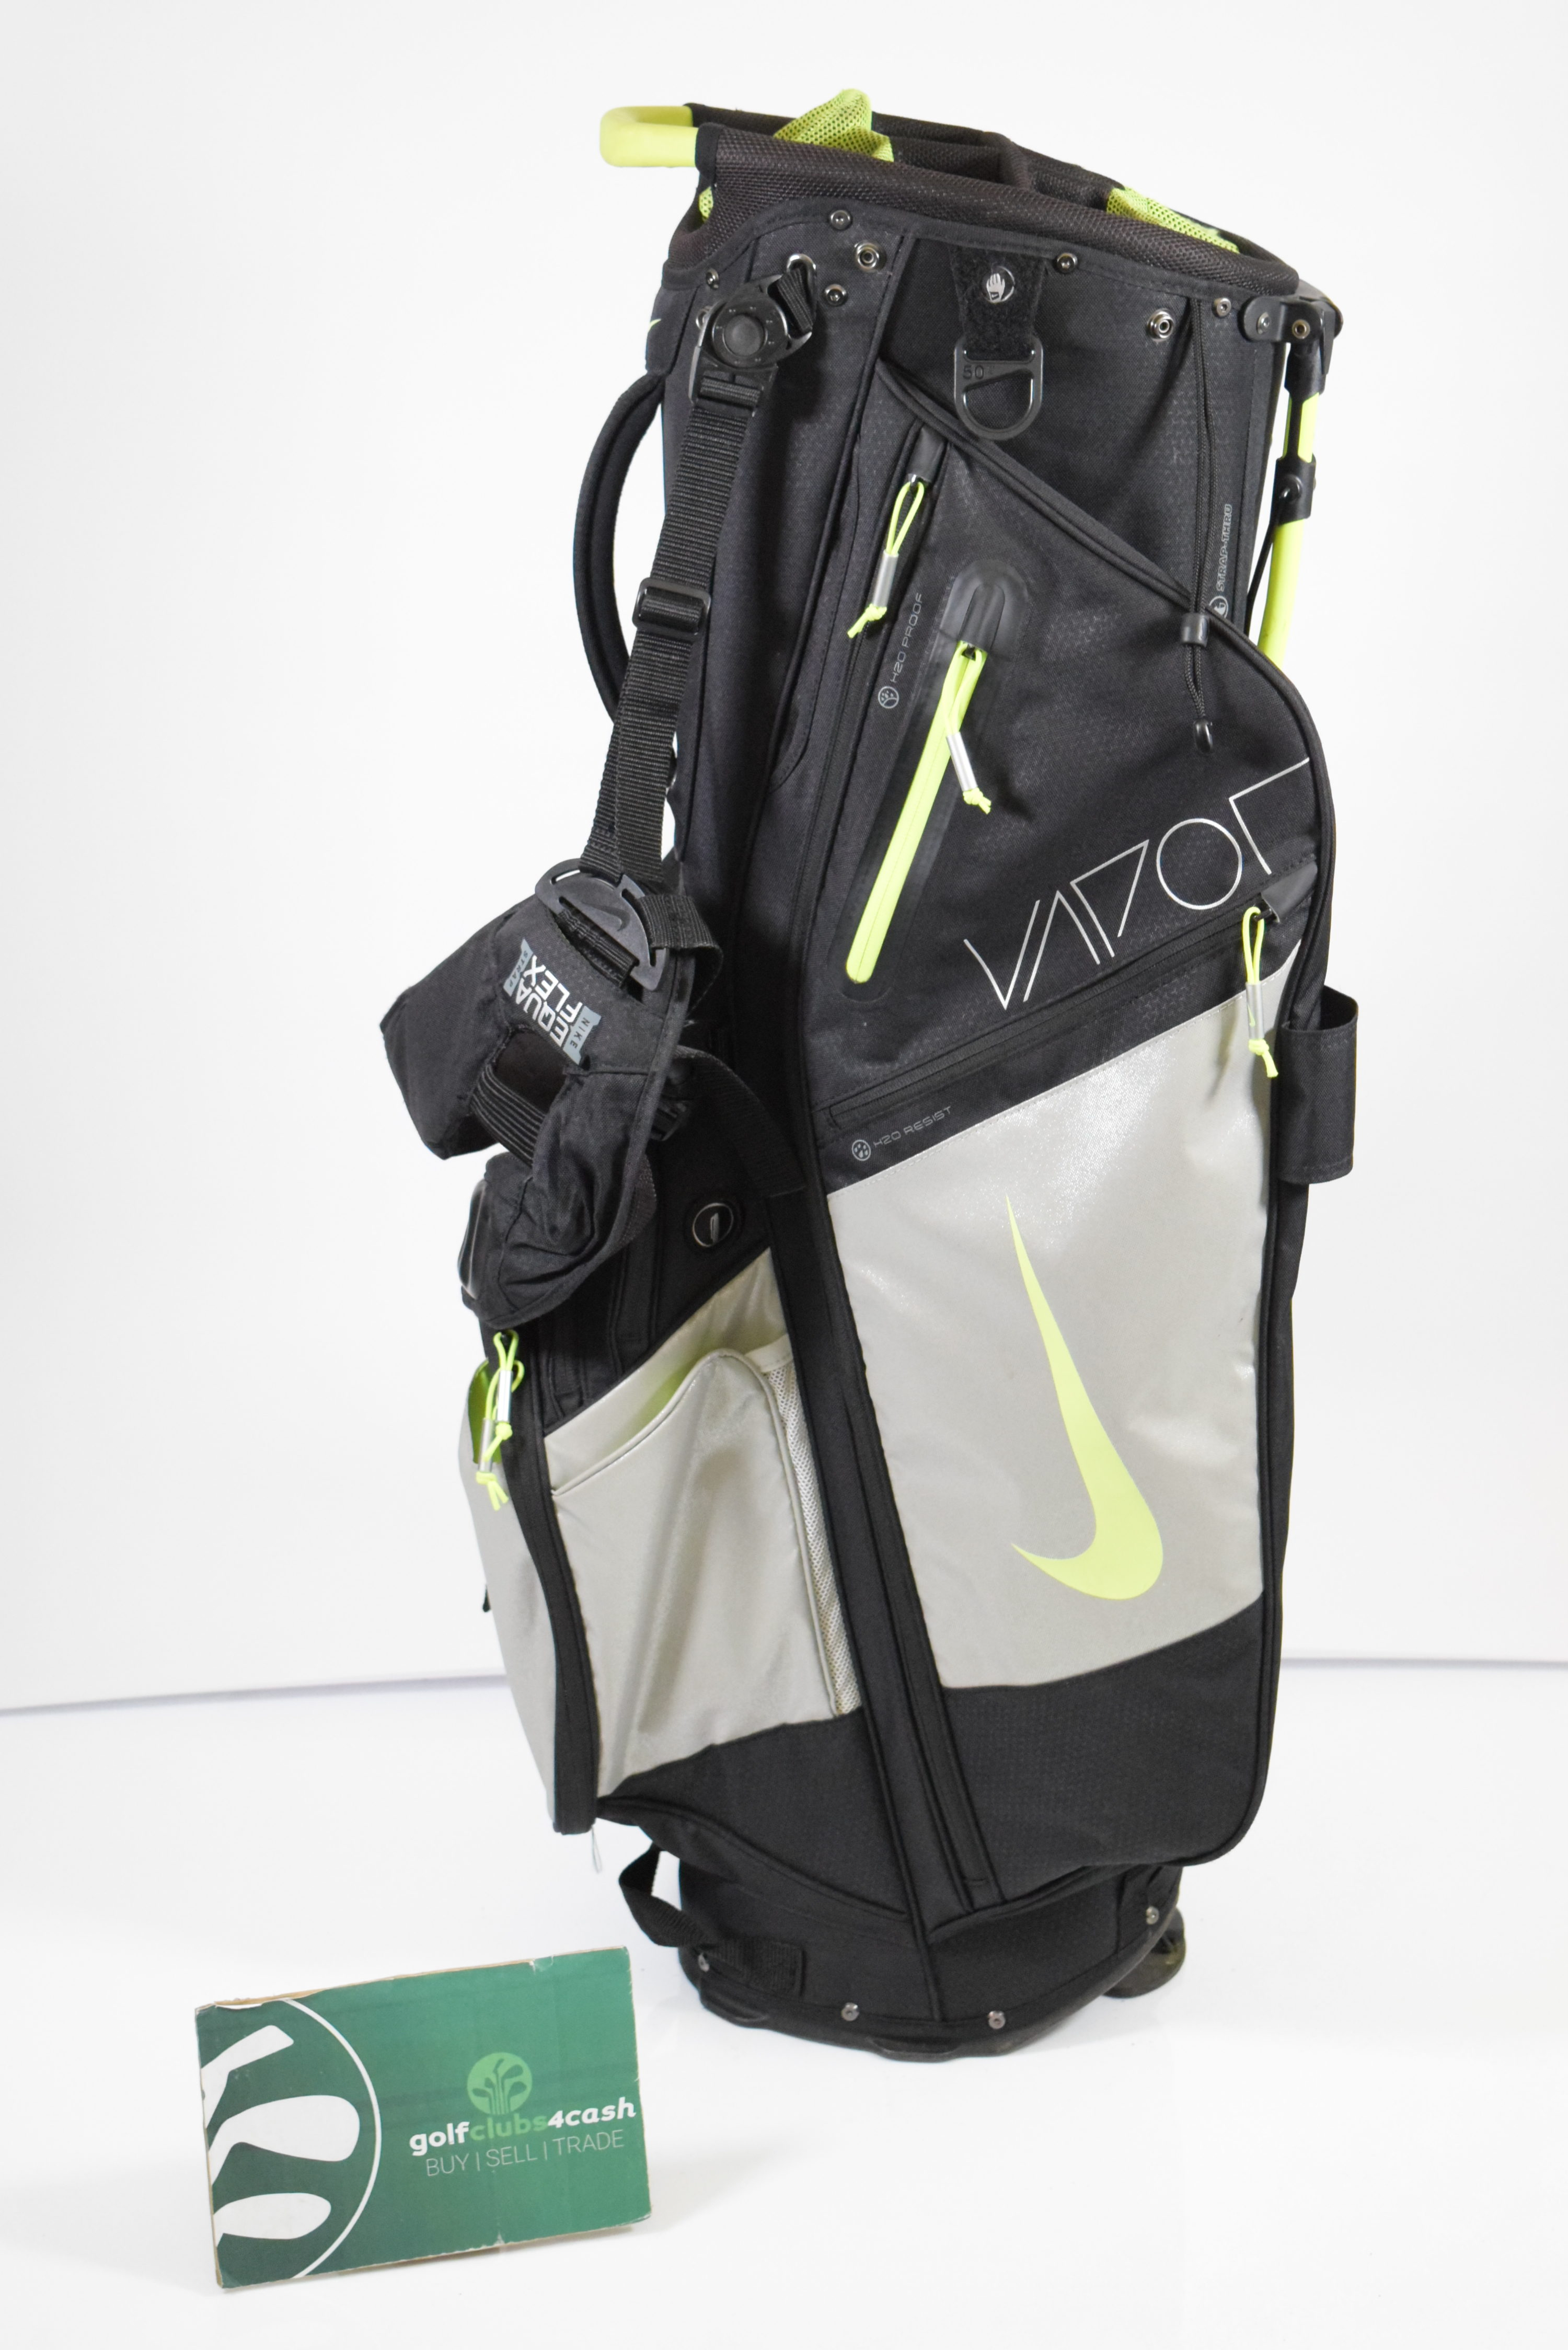 Nike Vapor Stand Bag Black Green Silver 14 Way Dividers